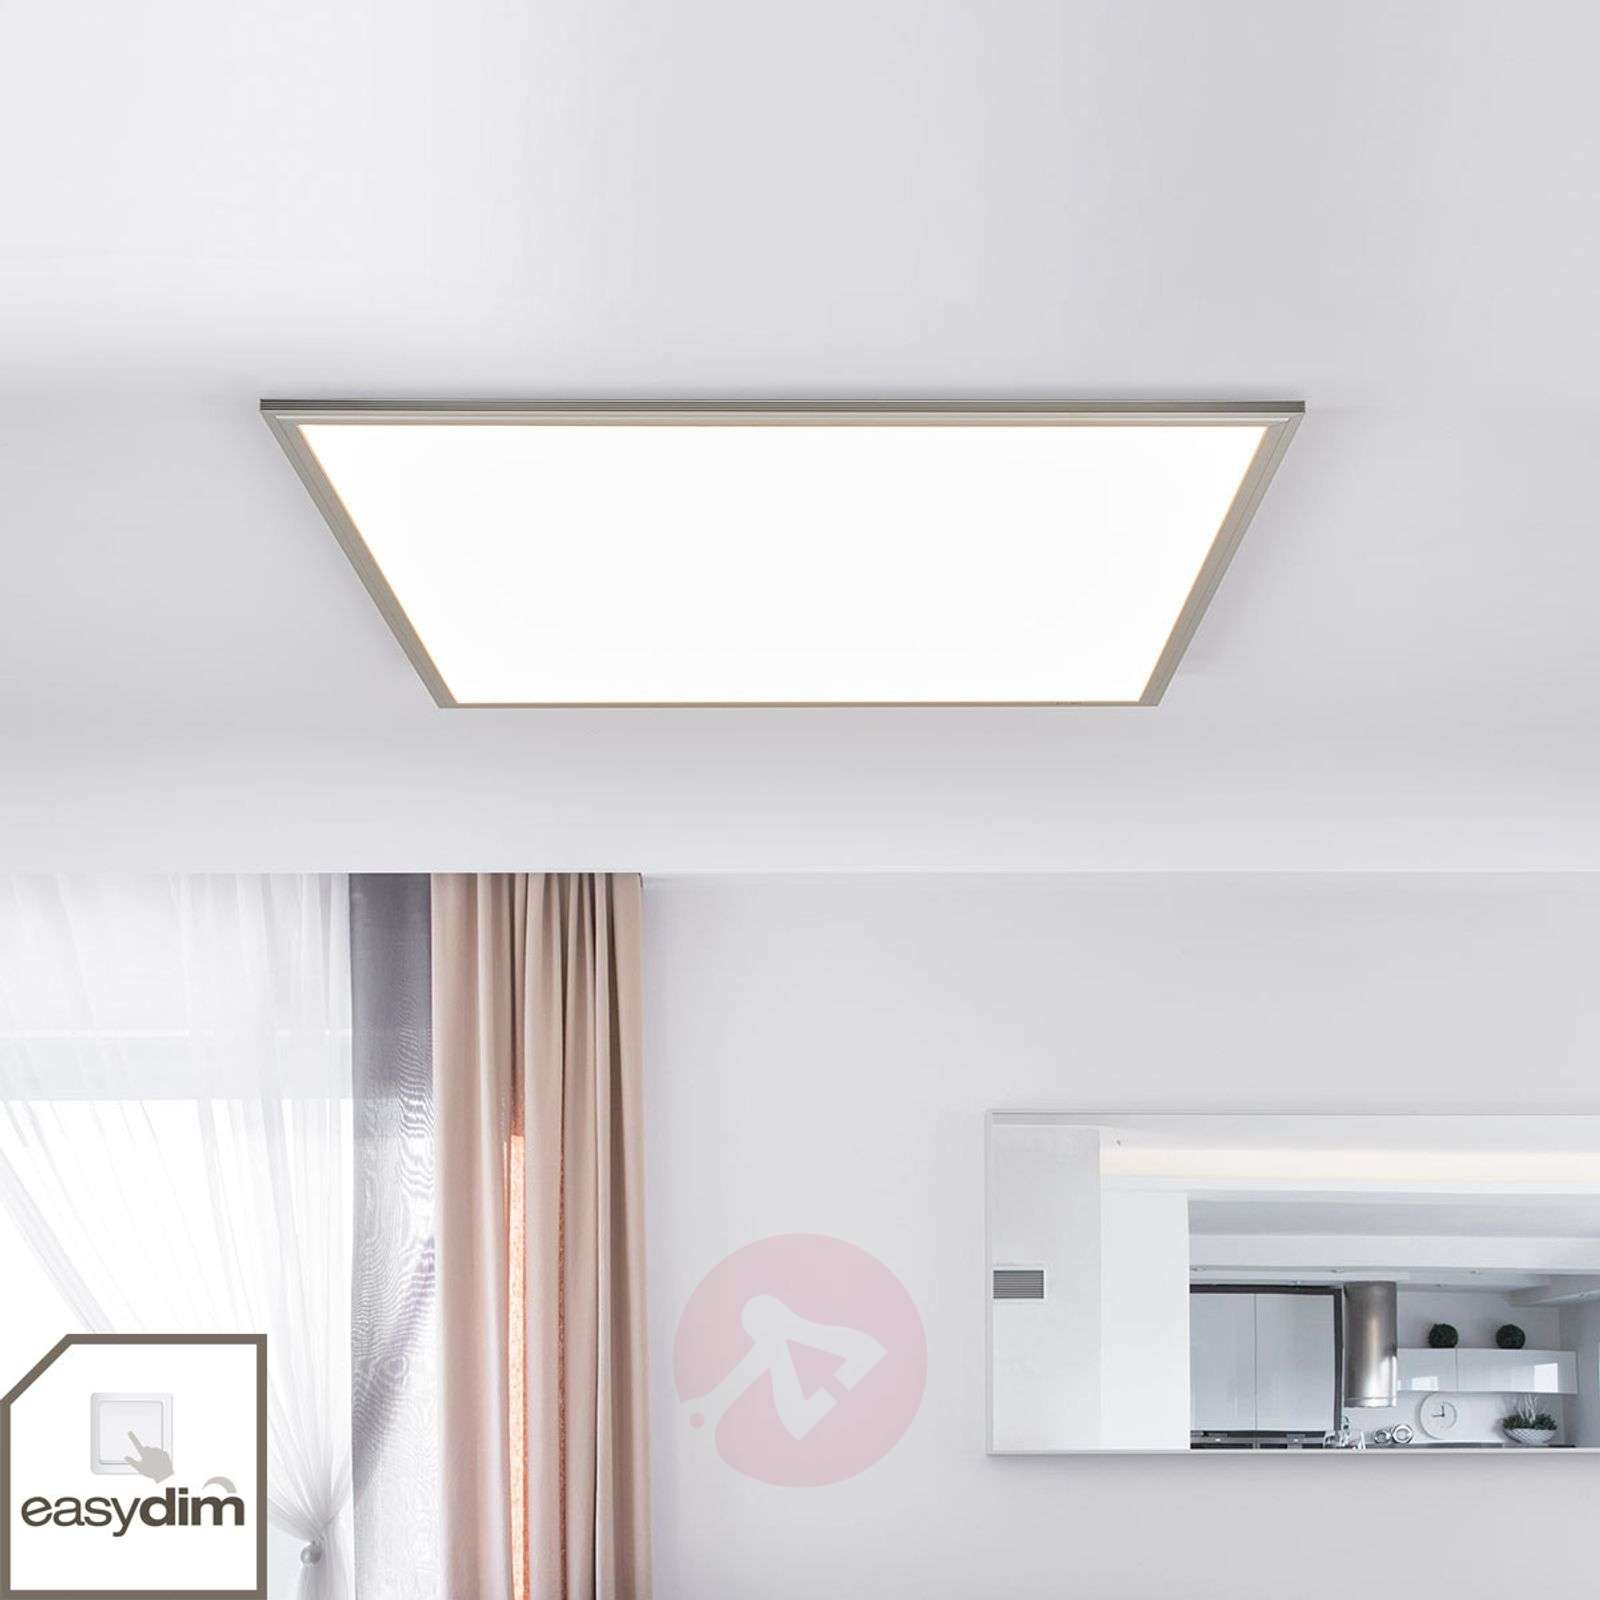 Moira dimmable LED panel in square shape-1558076-01